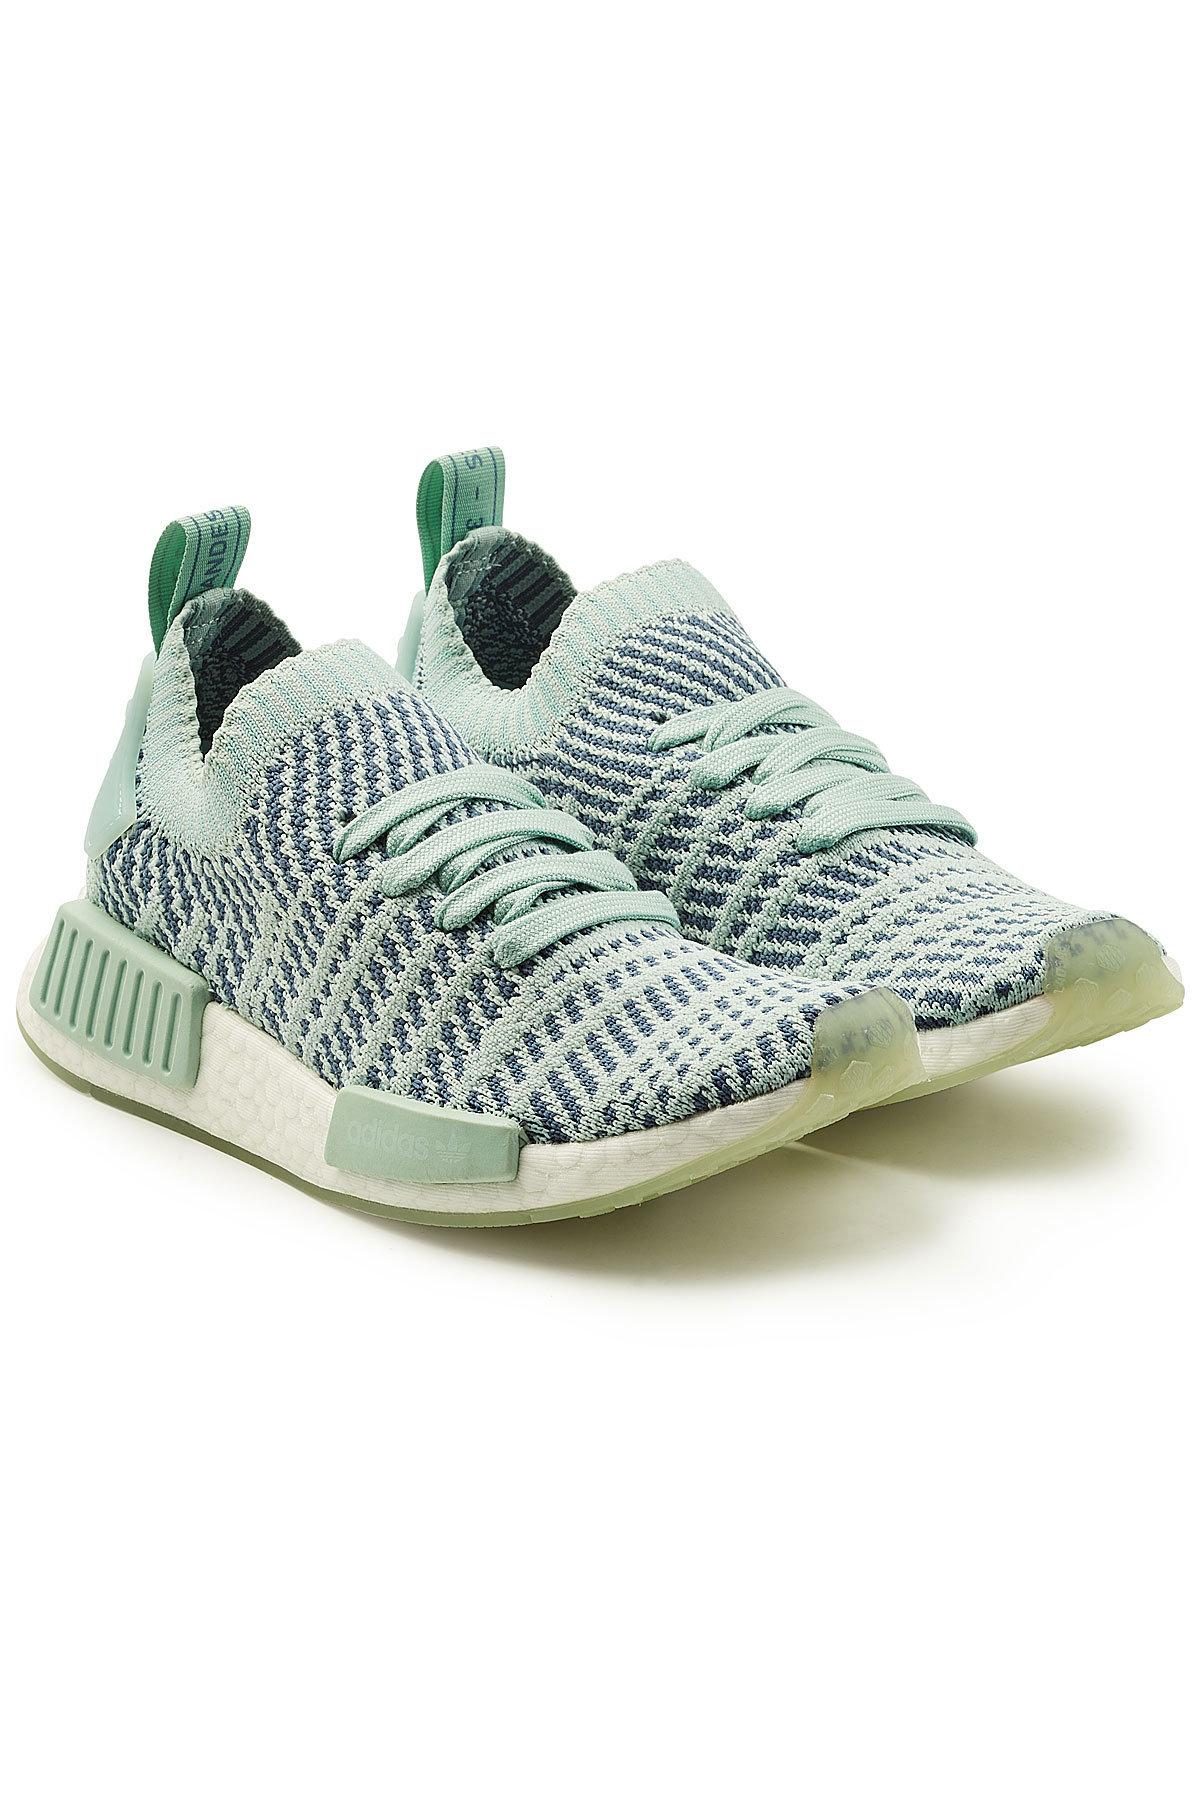 eb02102d18ed Adidas Originals Nmd R1 Rubber-Trimmed Primeknit Sneakers In Mint ...